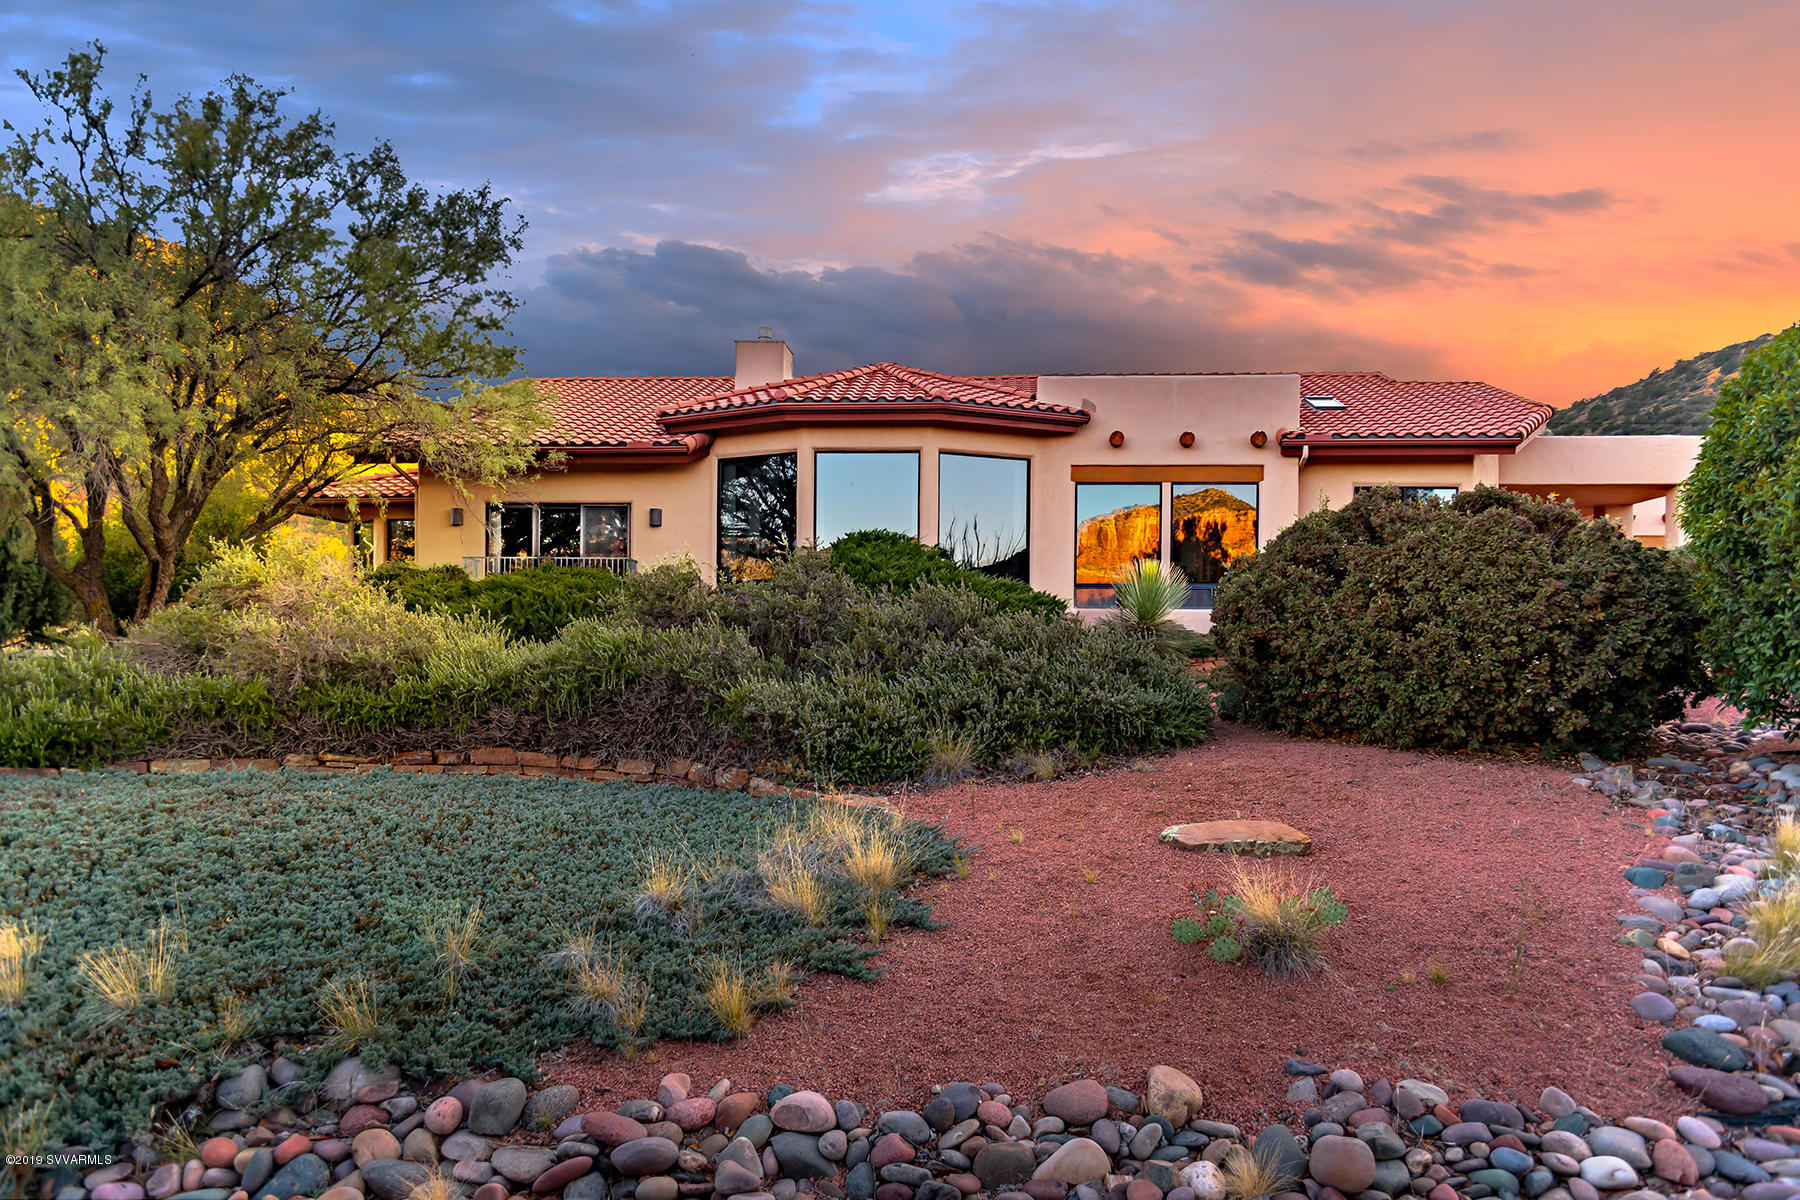 888 E Saddlehorn Rd, Sedona, Arizona